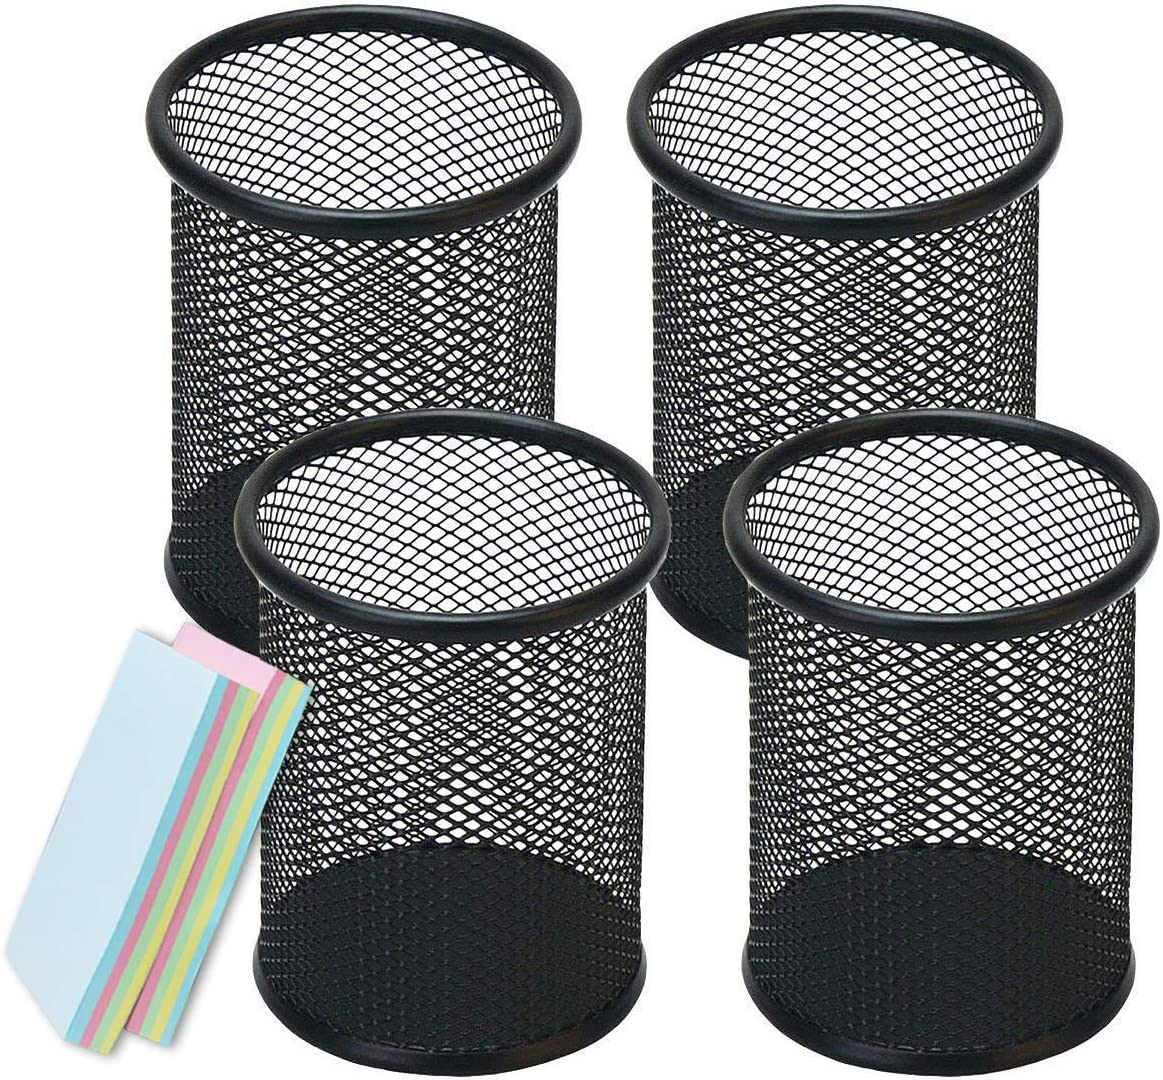 Qualsen Pen Holder 4 Pack, Mesh Desk Organizer Pencil Holder, Black